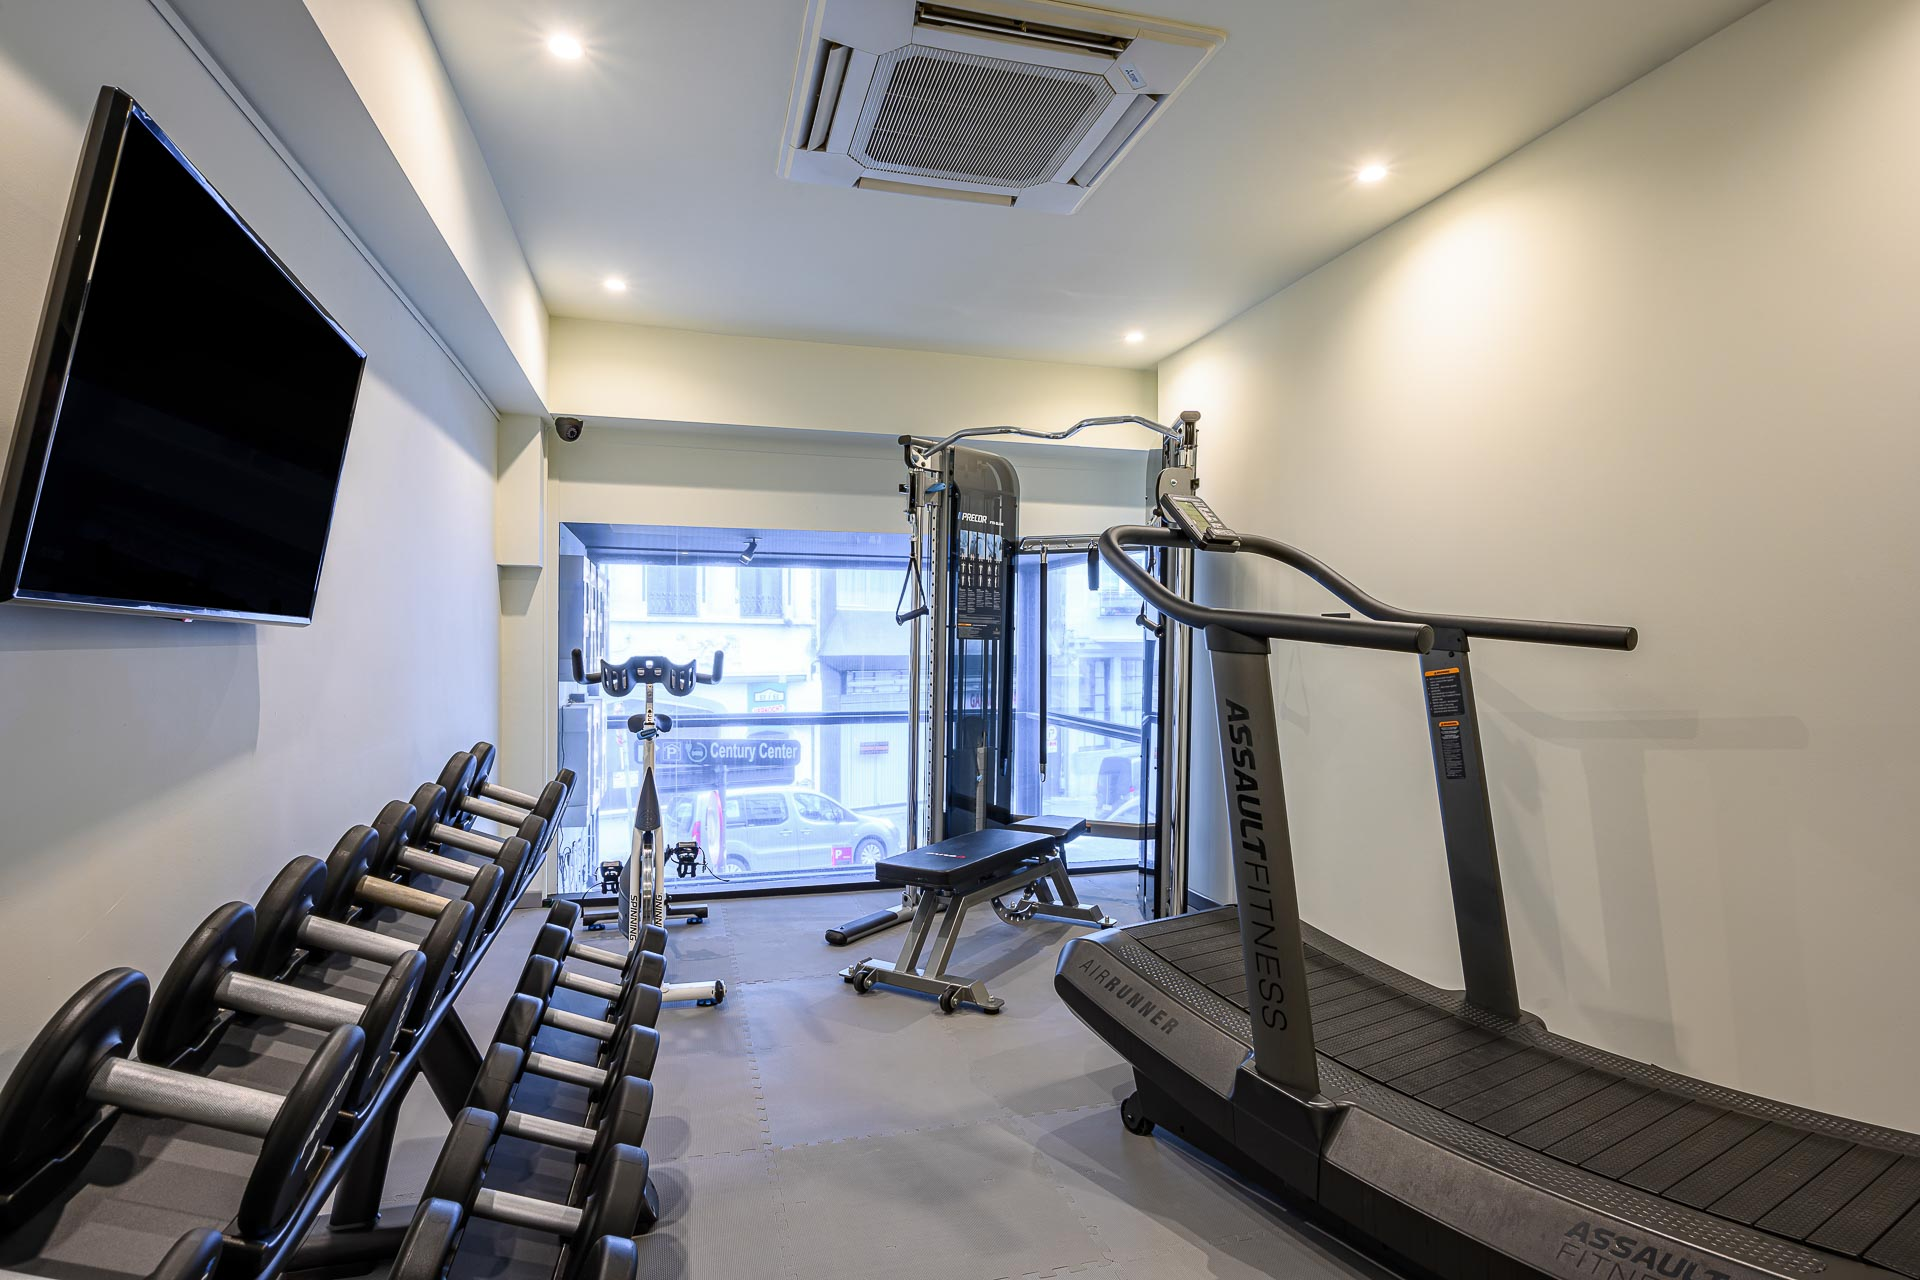 Hotel fitness in Antwerpen